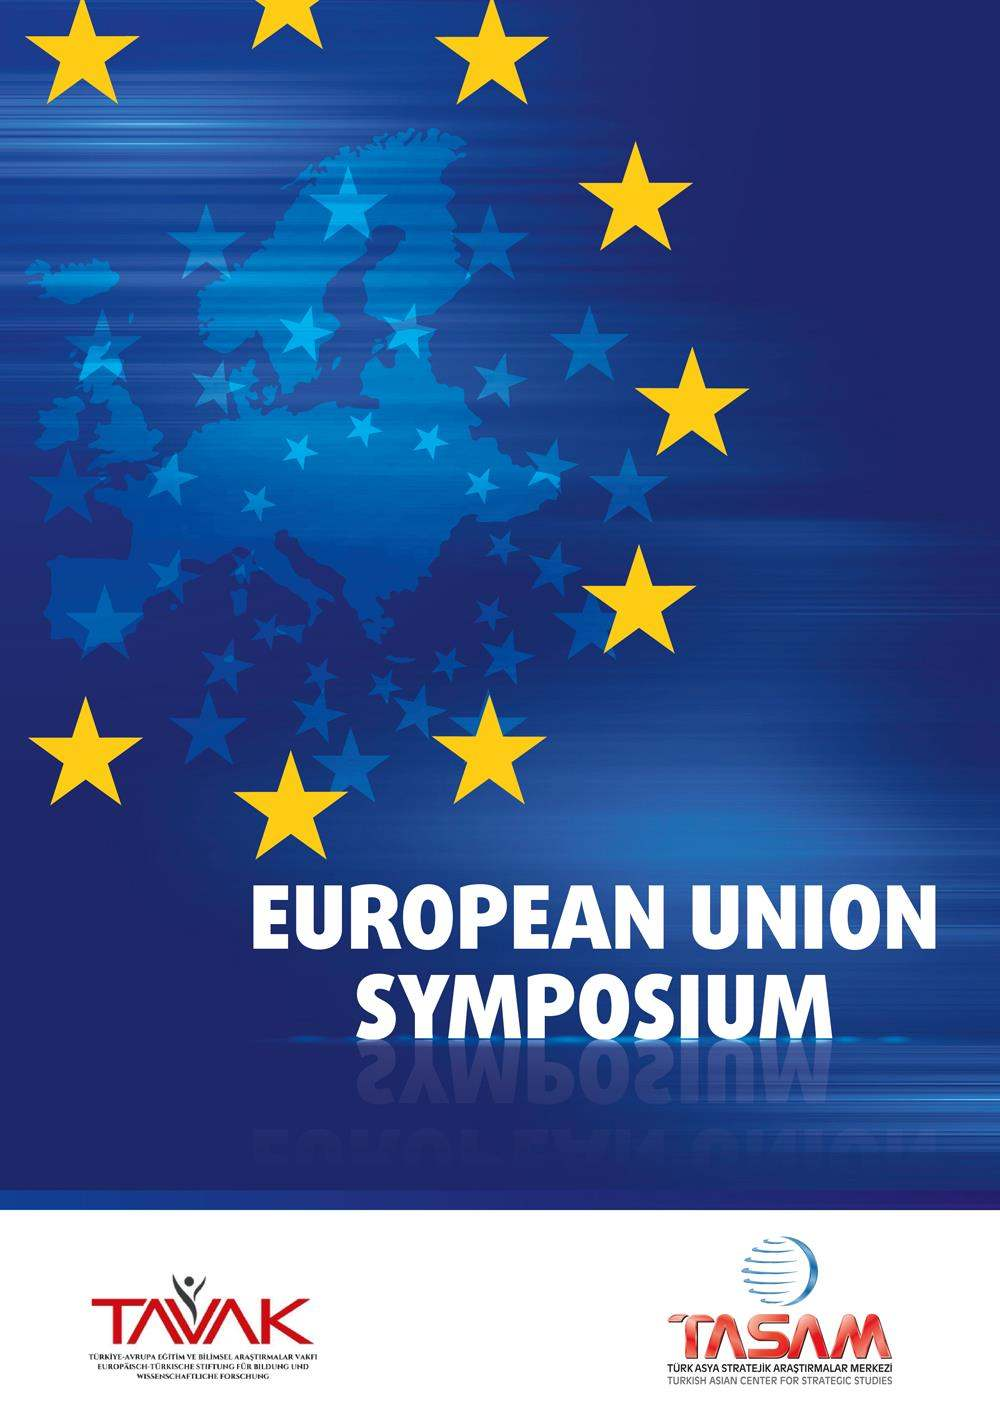 European Union Symposium